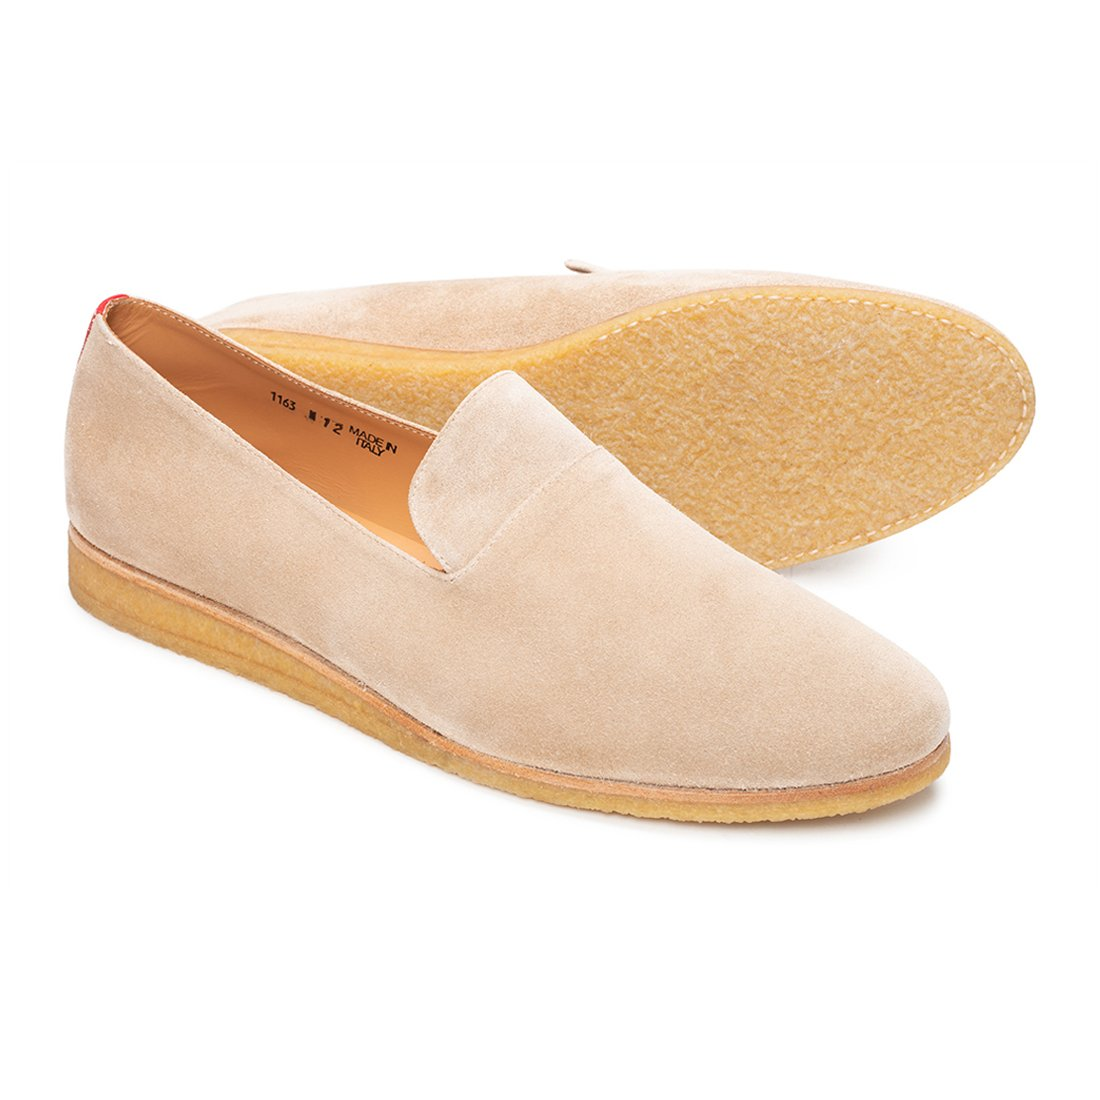 Sand Suede Everyday Loafer with Crepe Sole